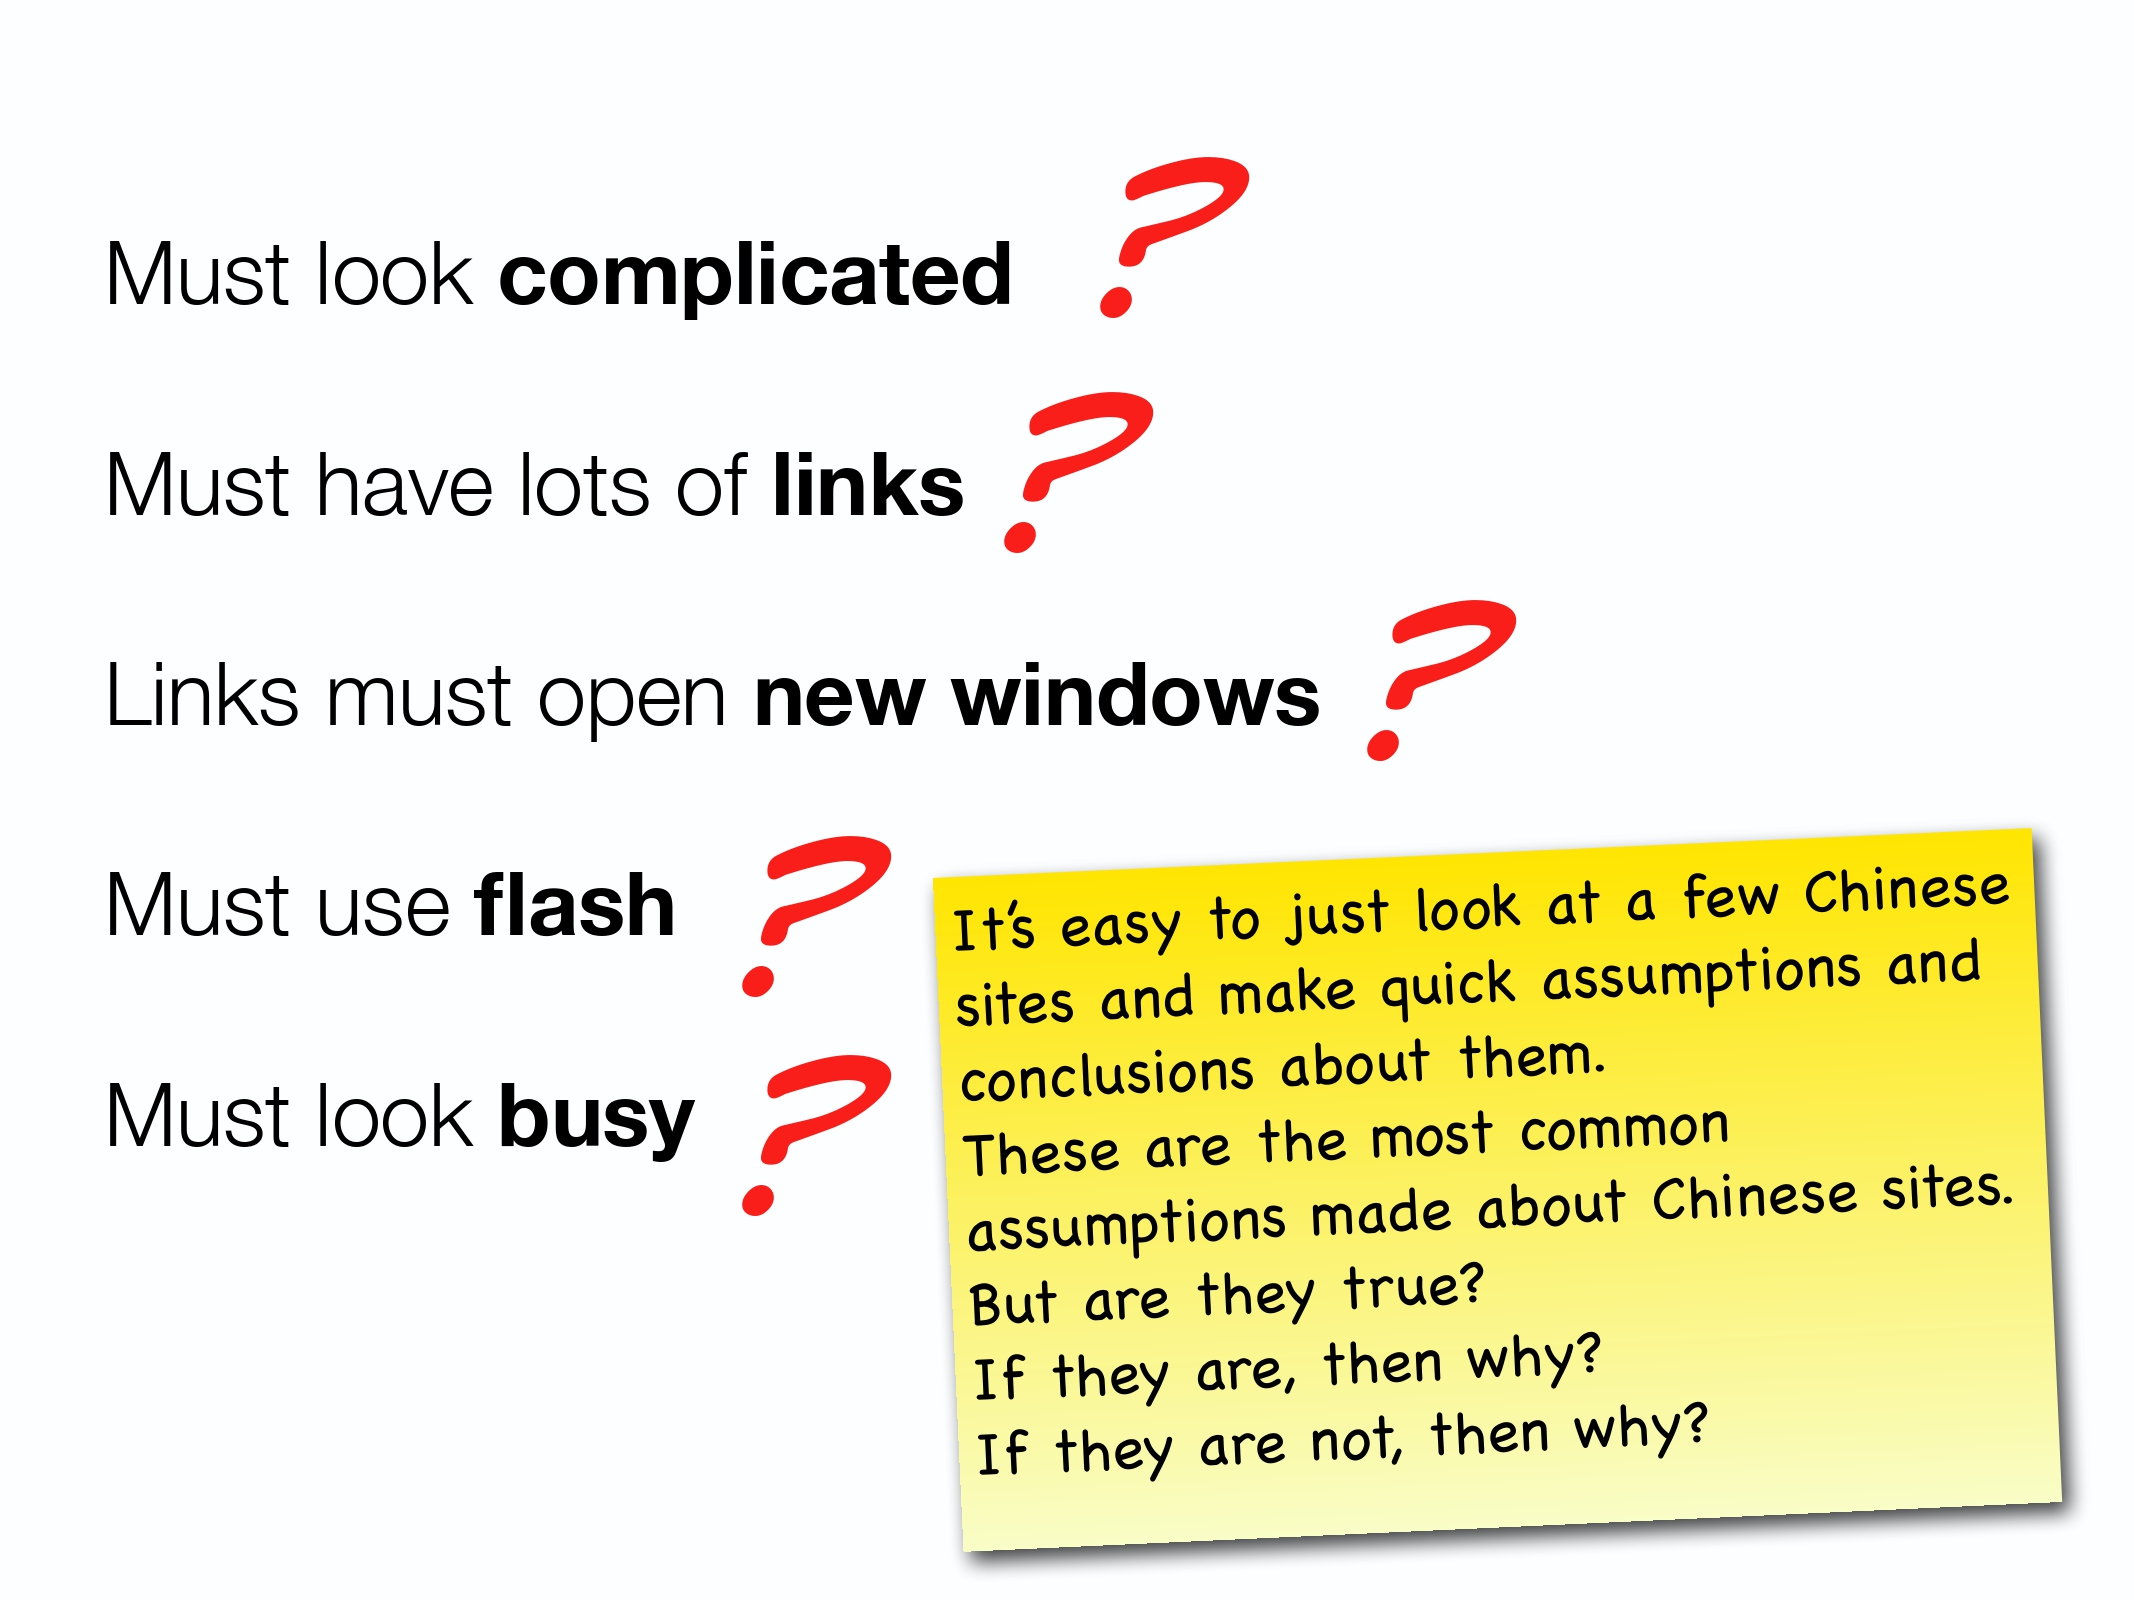 Chinese Web Design Patterns 2011_pages-to-jpg-0006.jpg